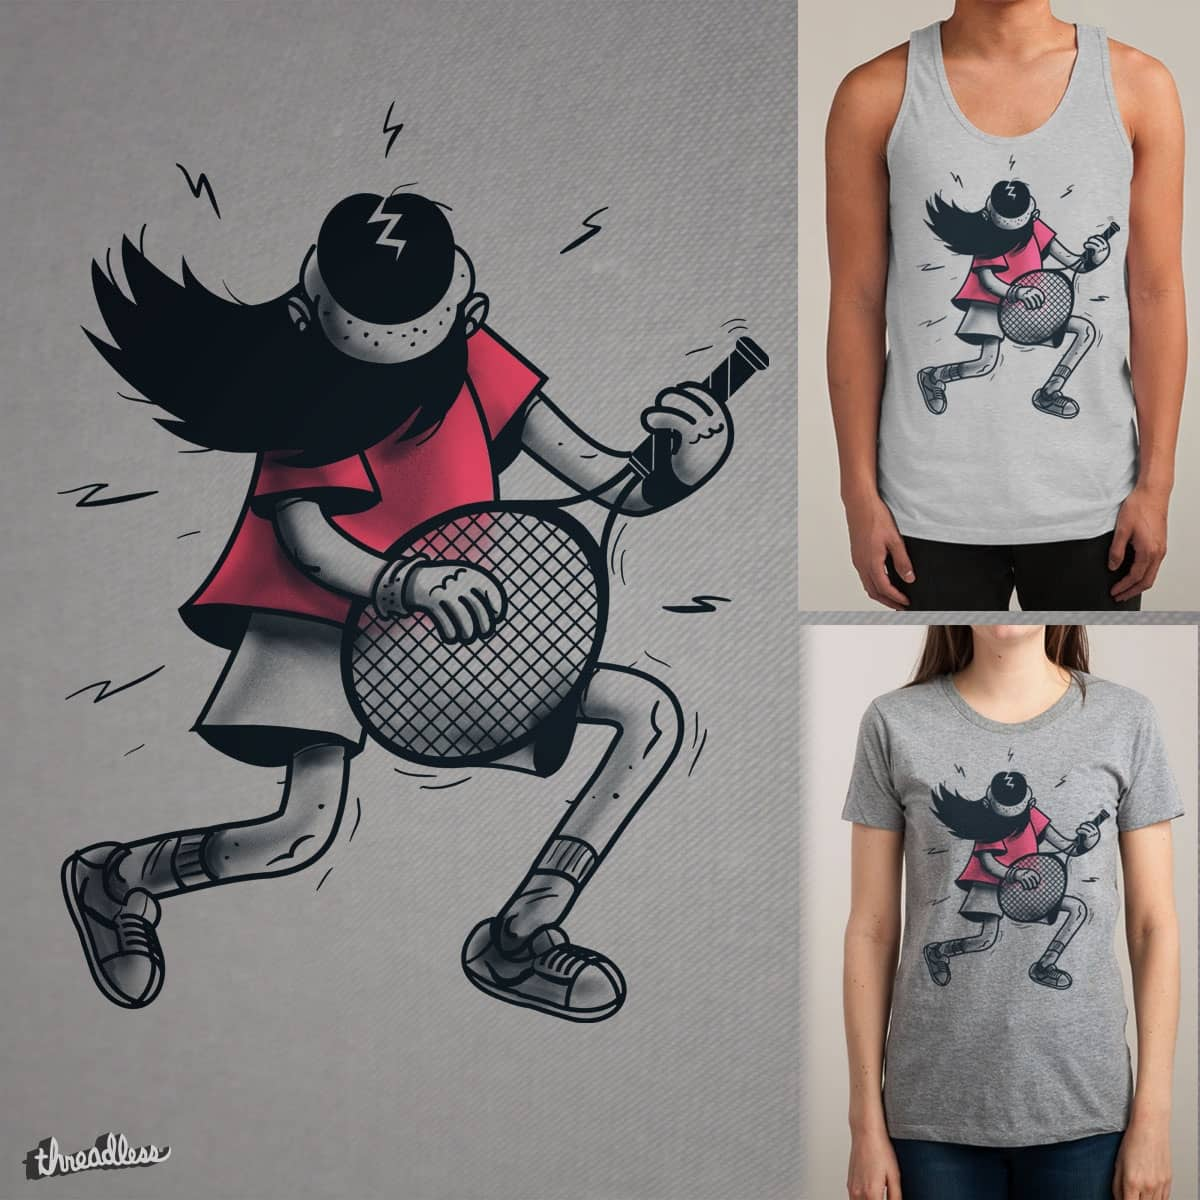 Air guitar Tennis by Gums. on Threadless